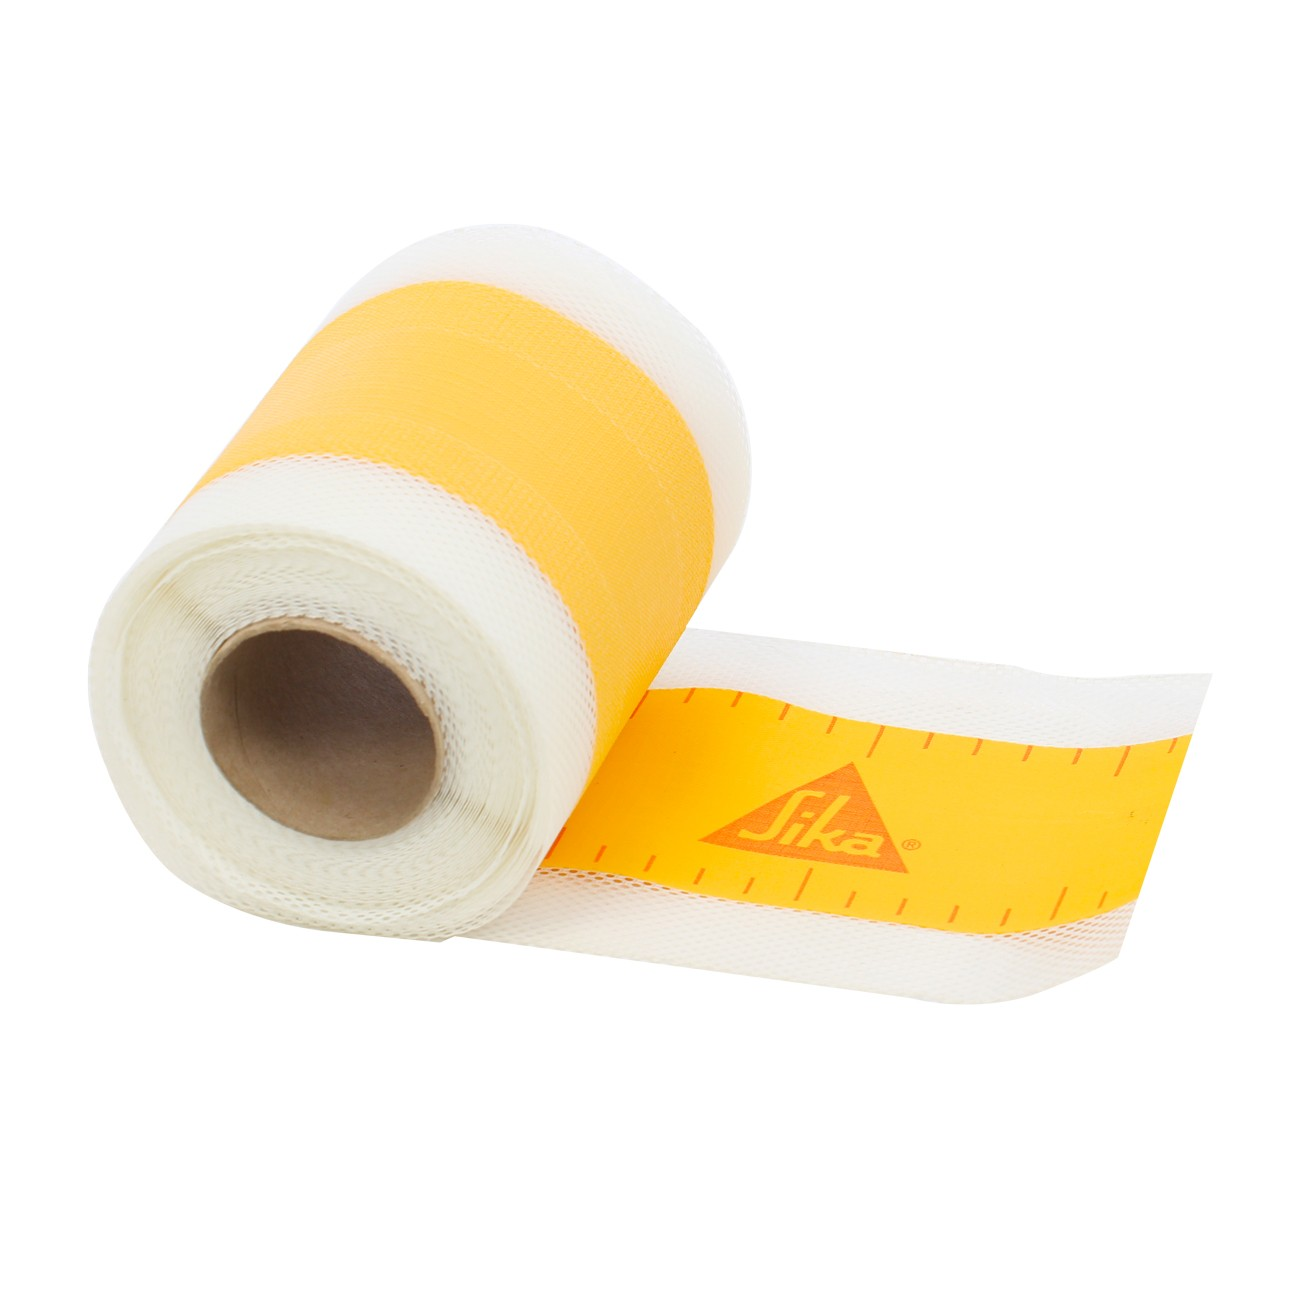 SikaSeal Tape S, 10 m./roll